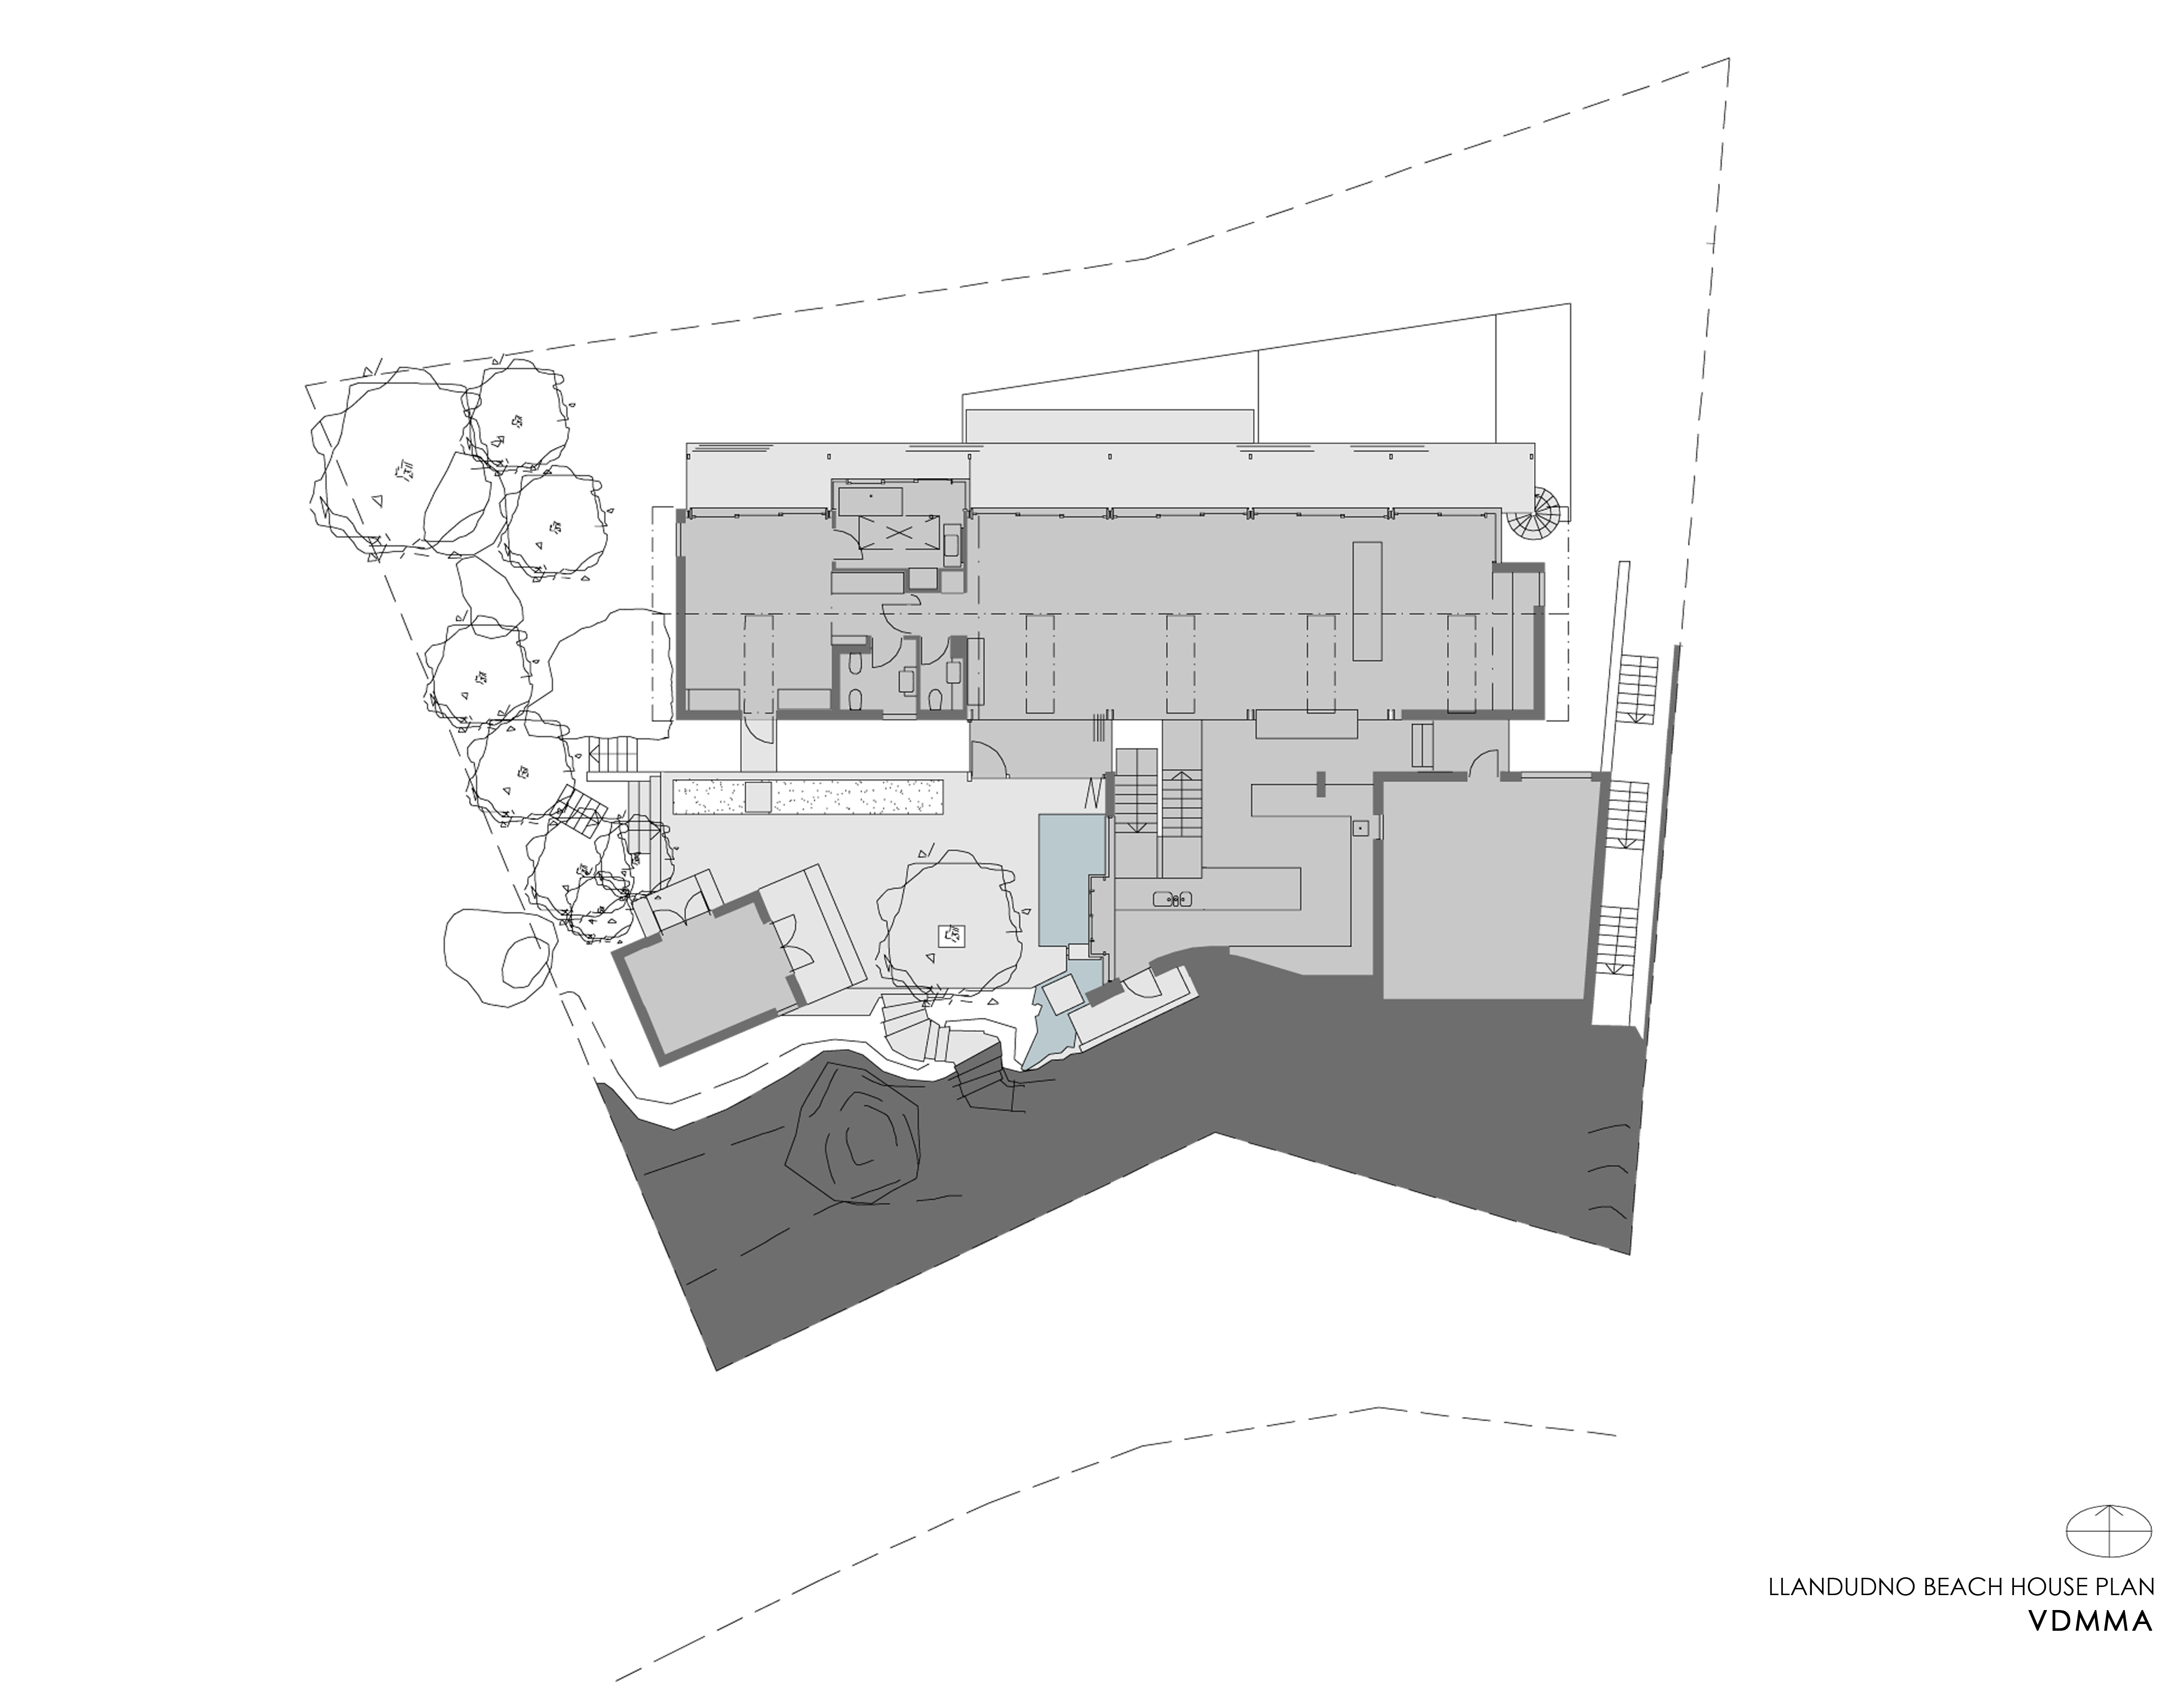 LLANDUDNO BEACH HOUSE plan